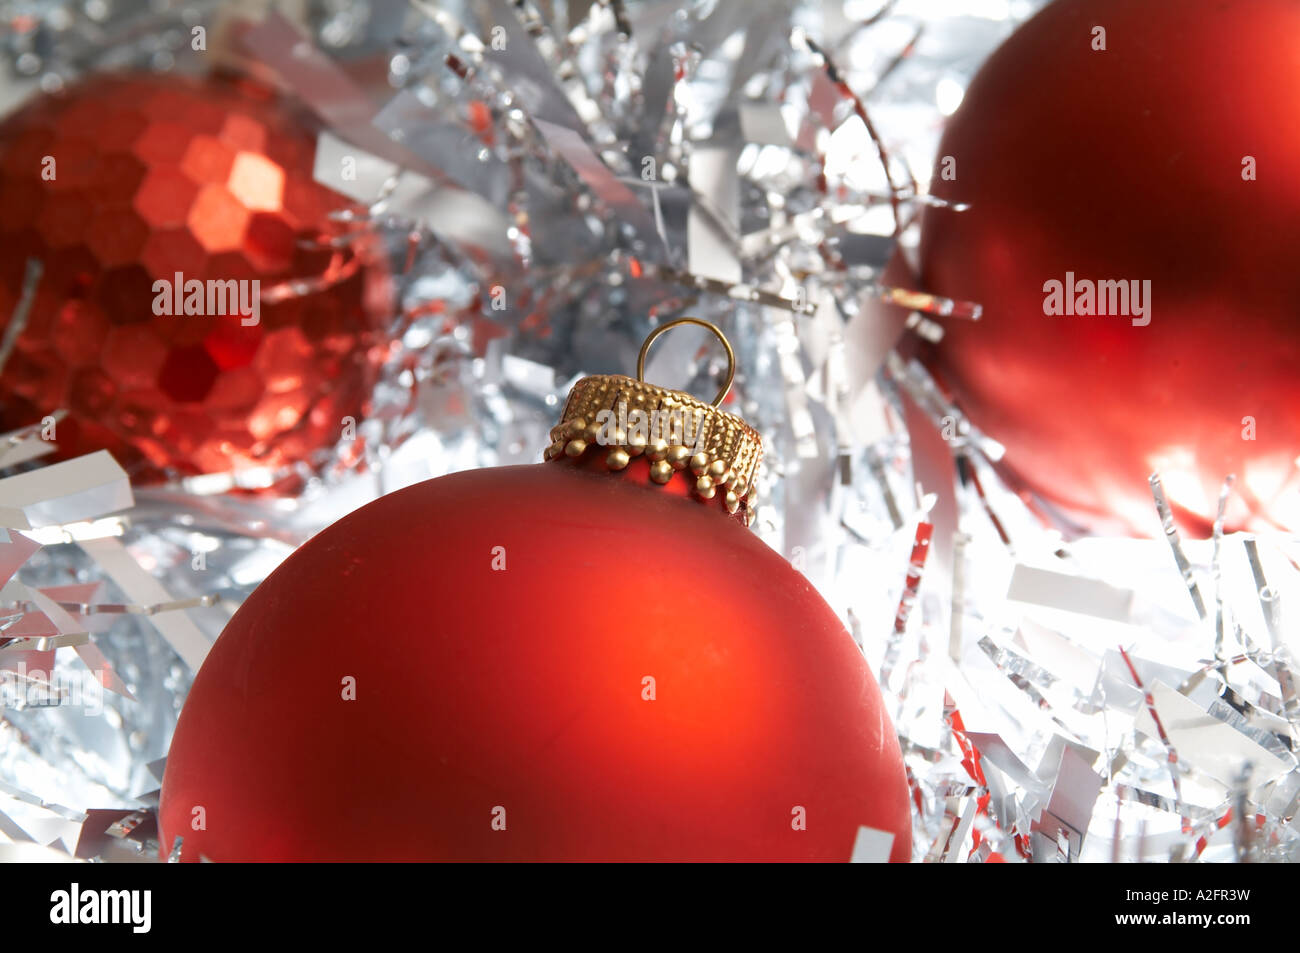 office christmas party decorations. Christmas, Decorations, Borball, Bourbell, Tinsel, Xmas, Tree, Office, Party, Festive, Session, Festivit Office Christmas Party Decorations P